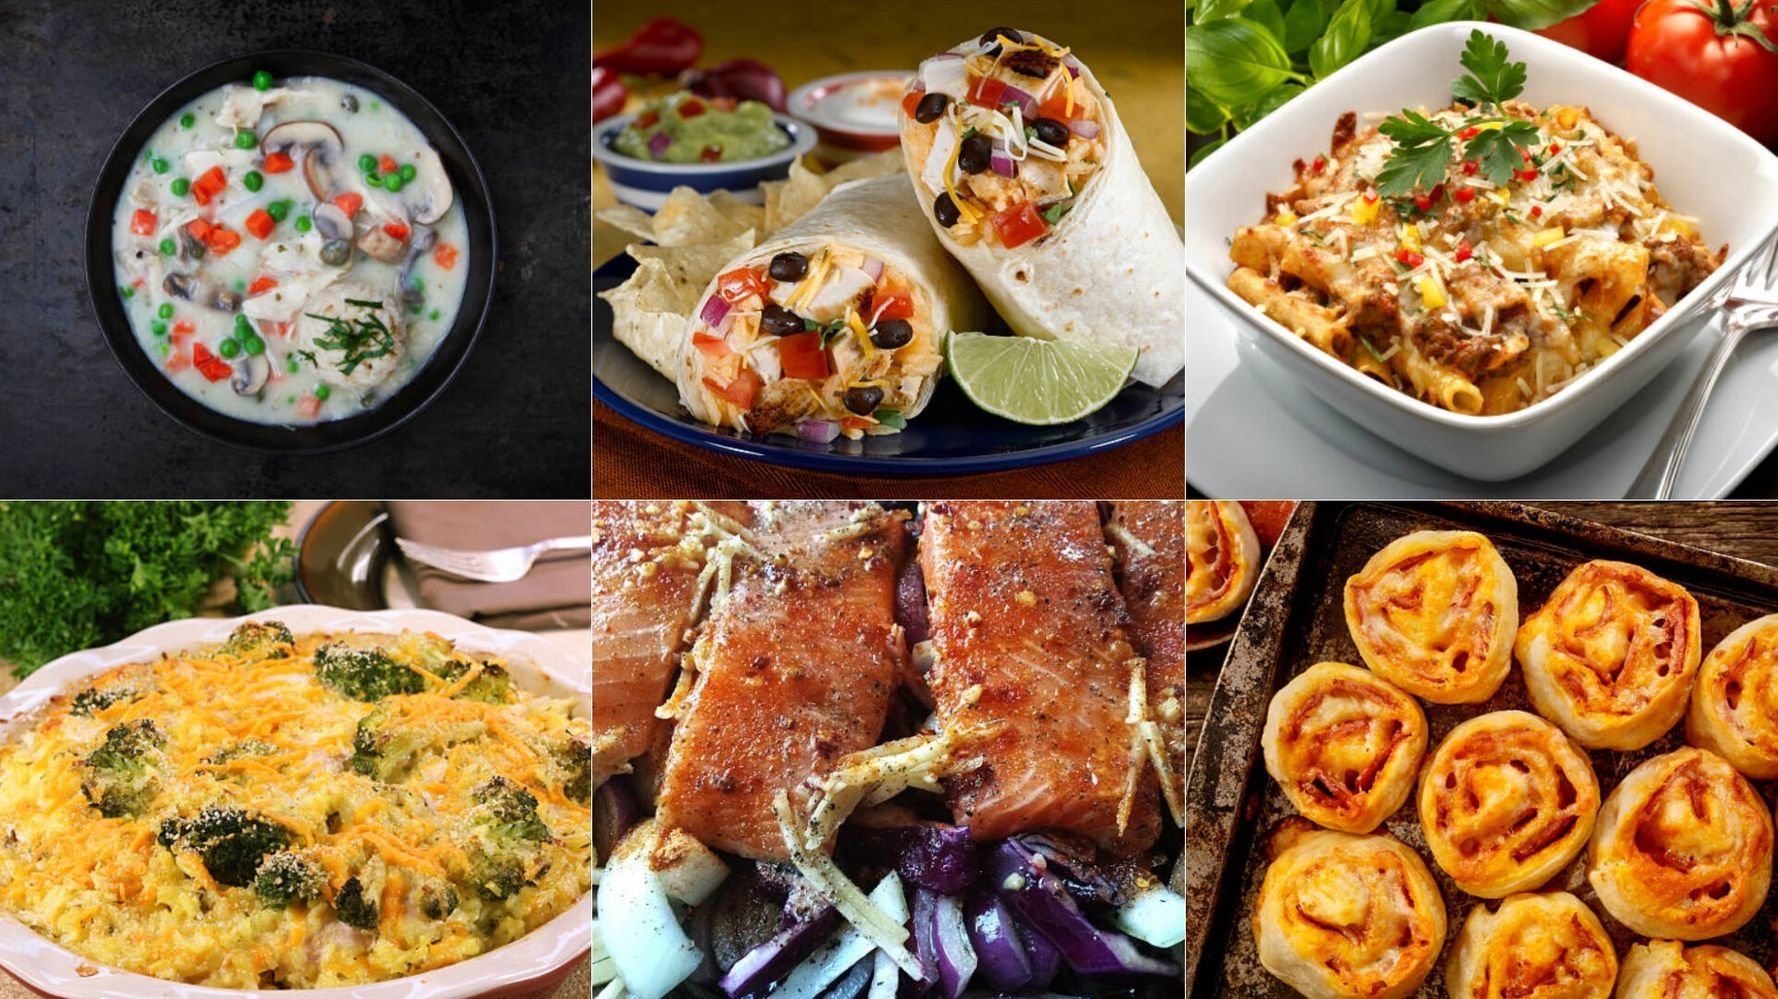 Weekly Meal Plan 6 Kid Friendly Dinner Recipes Feb 24 March 1